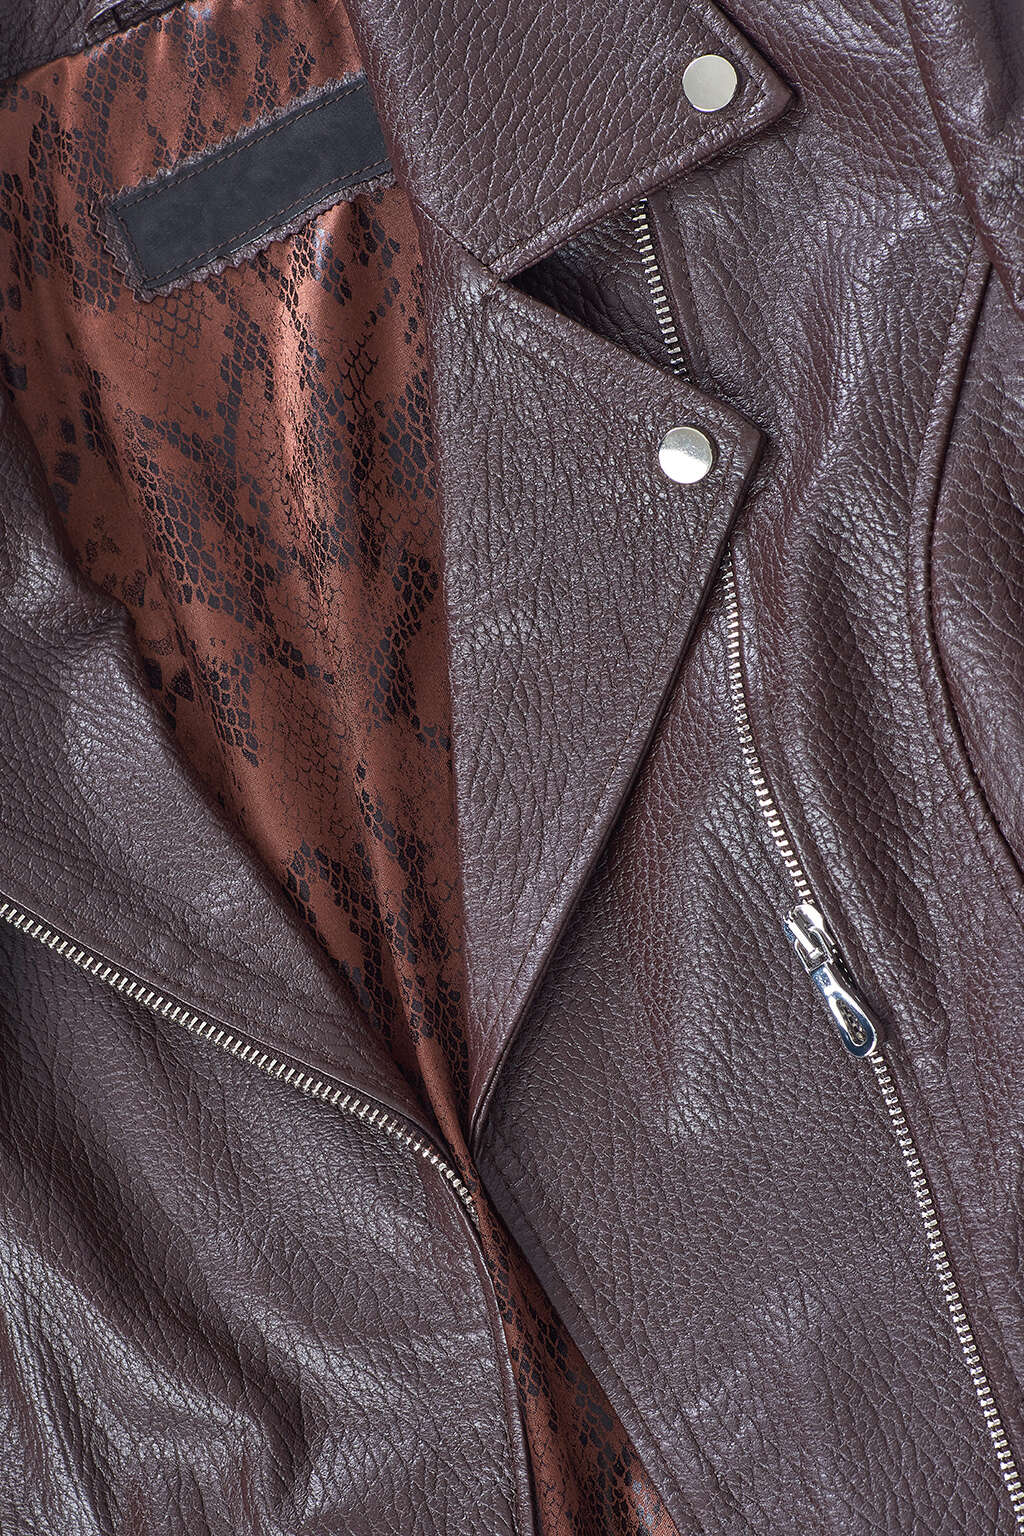 Collar and Inner Lining Detail of Brown Detailed Collar Biker Leather Jacket